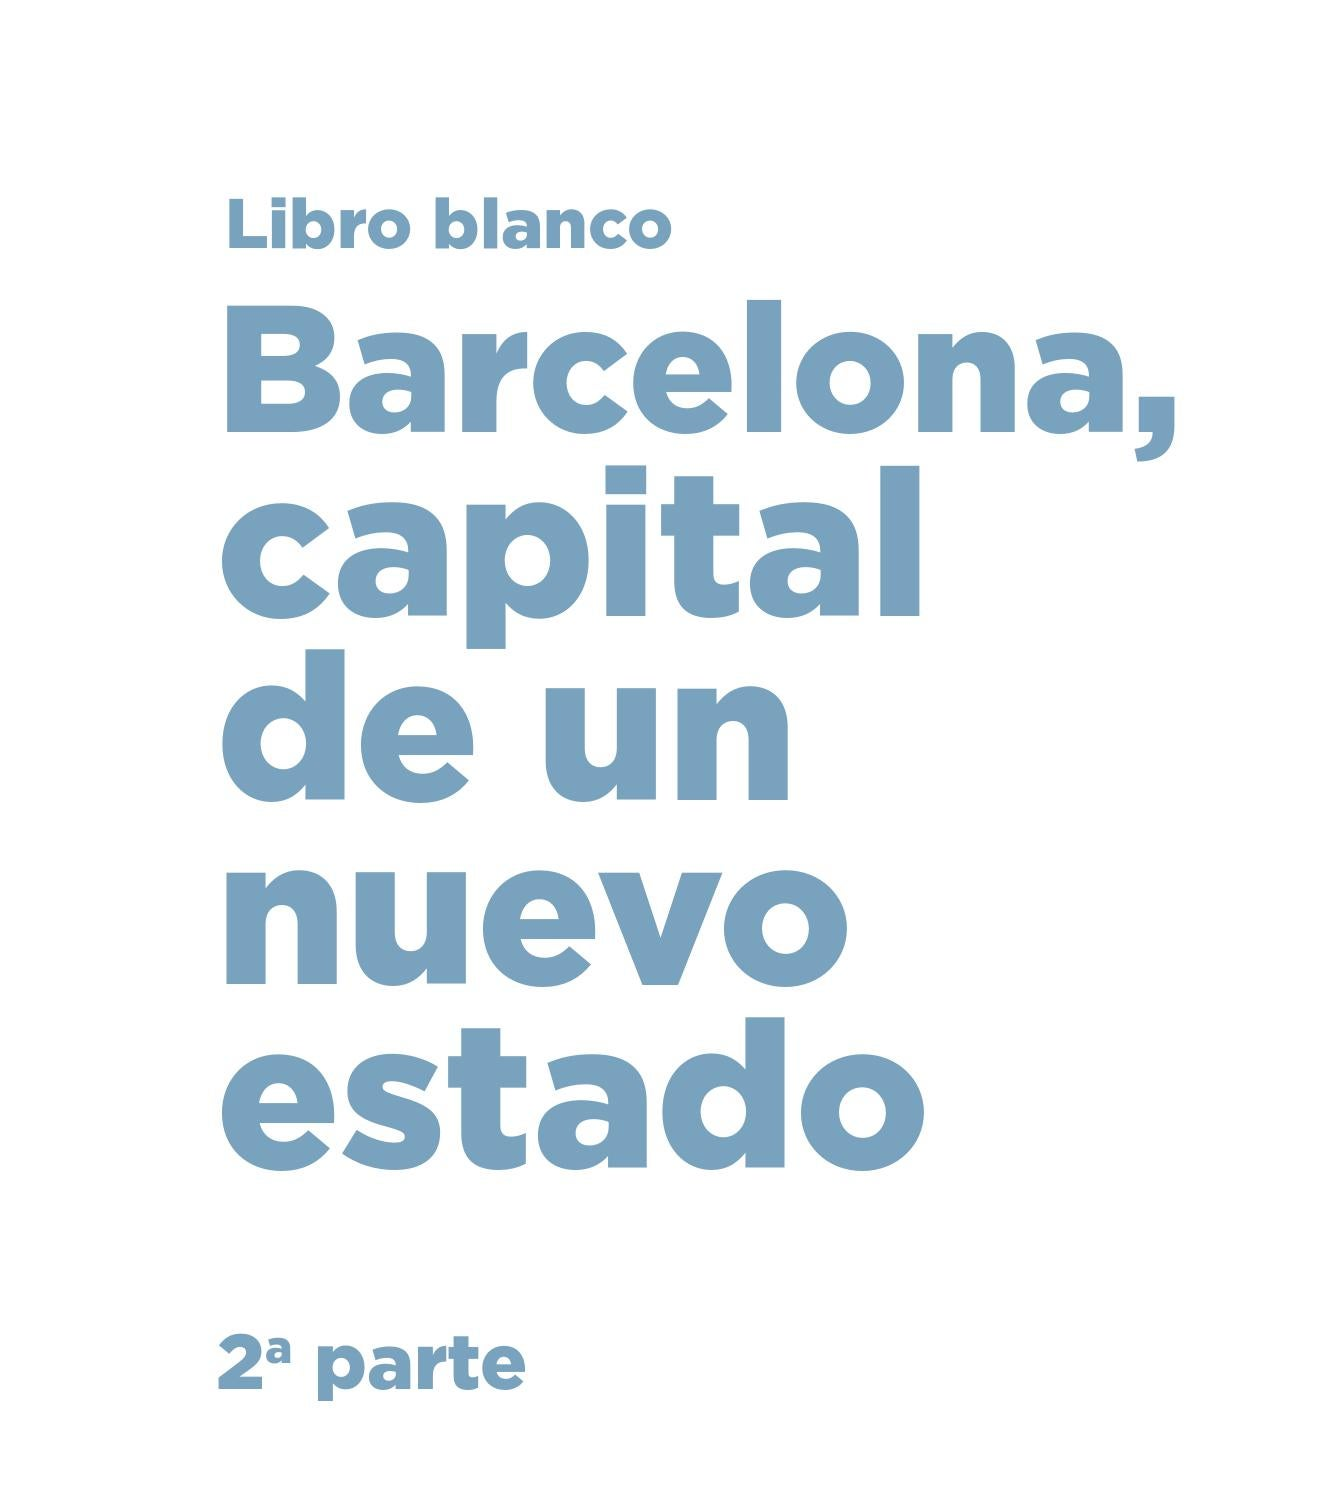 Libro Blanco, capital de un nuevo estado by Barcelona llibres - issuu